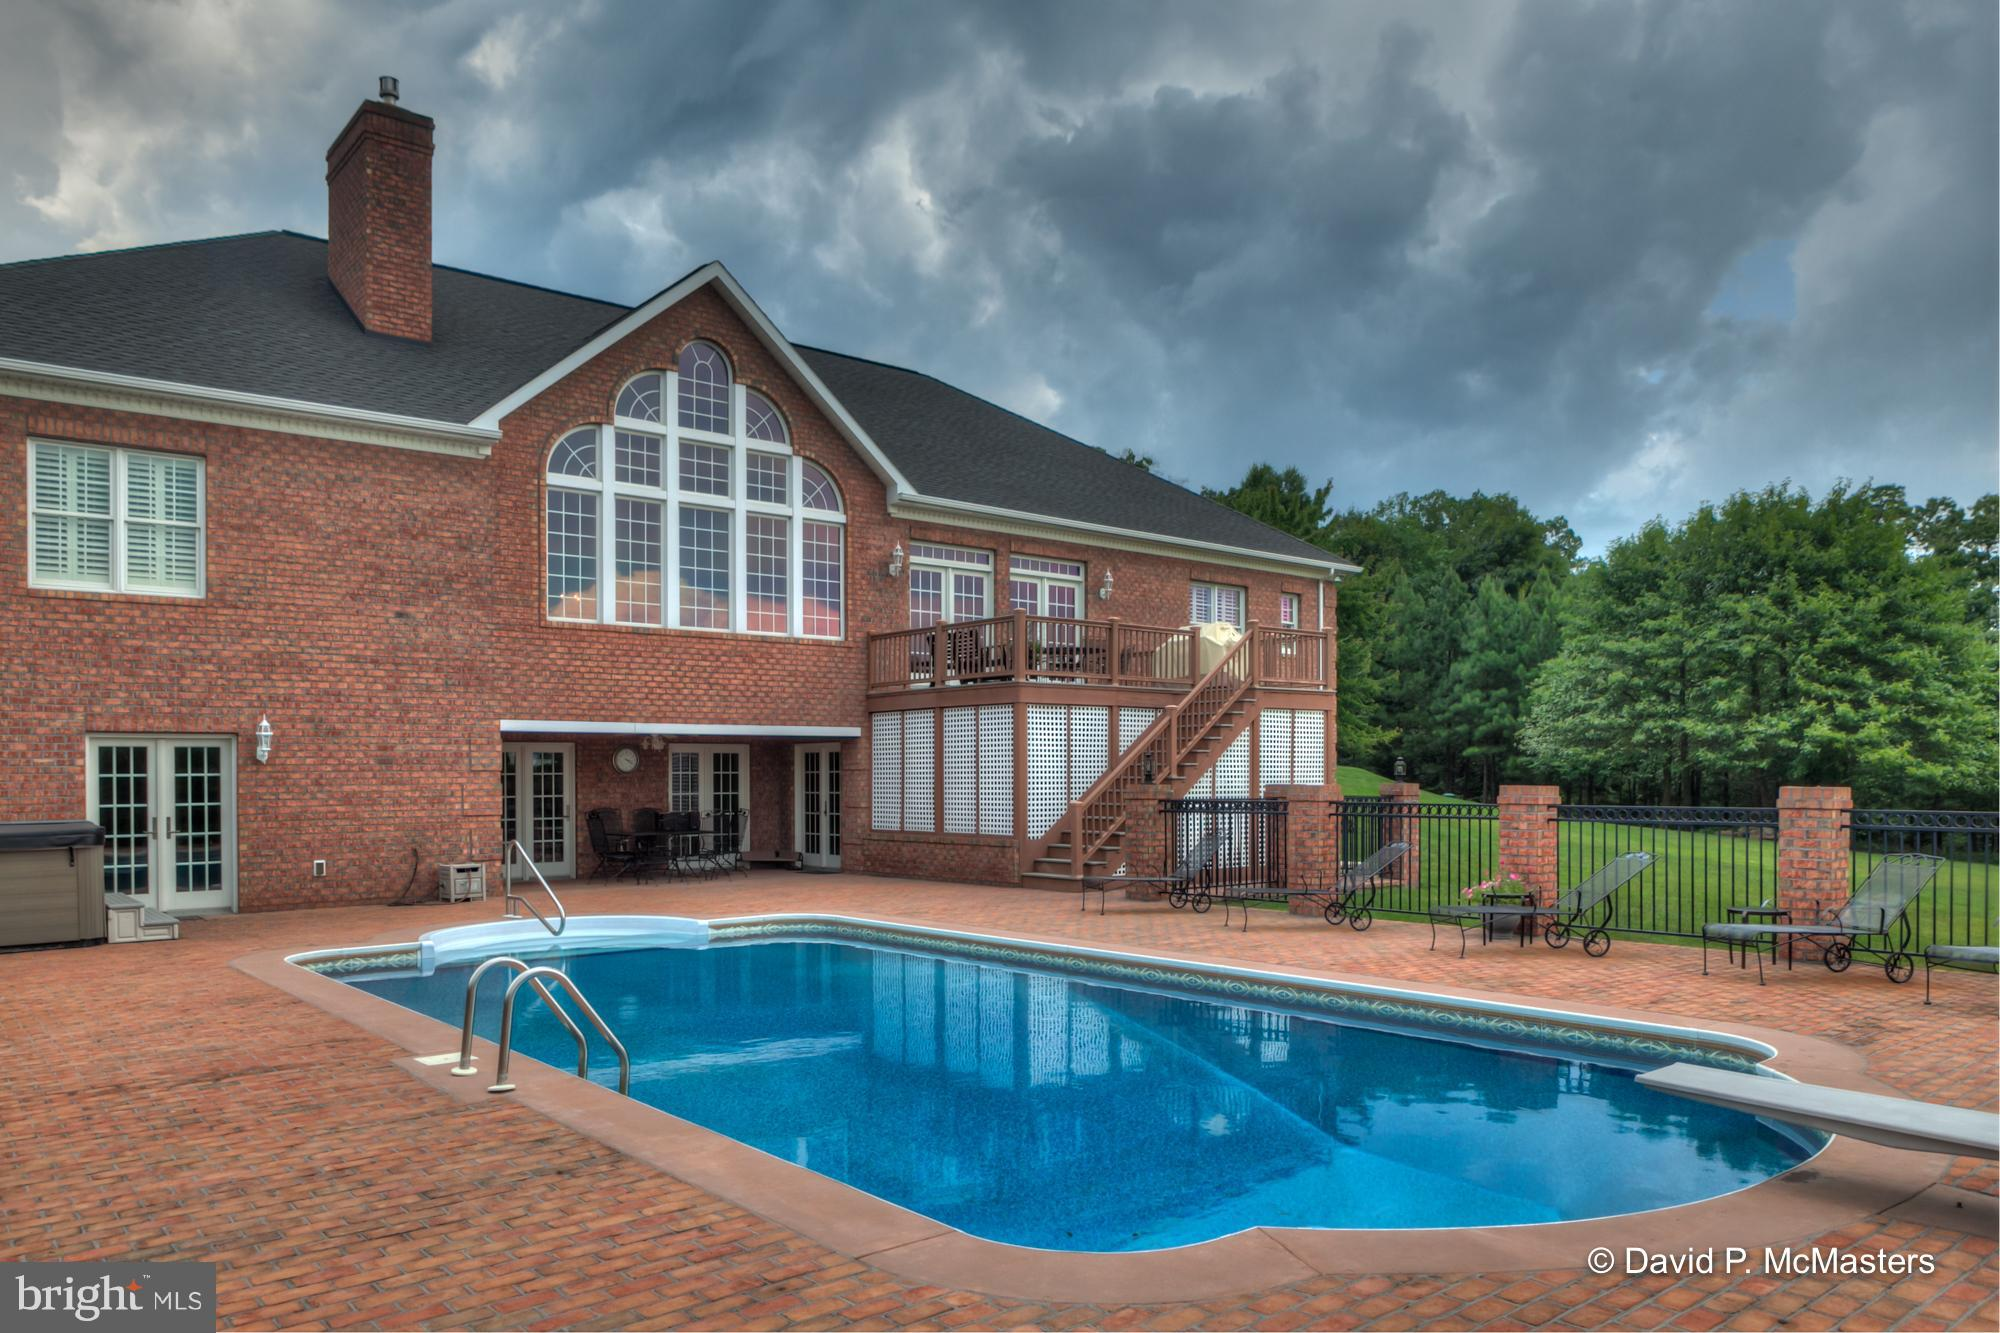 224 ONYX DRIVE, HEDGESVILLE, WV 25427